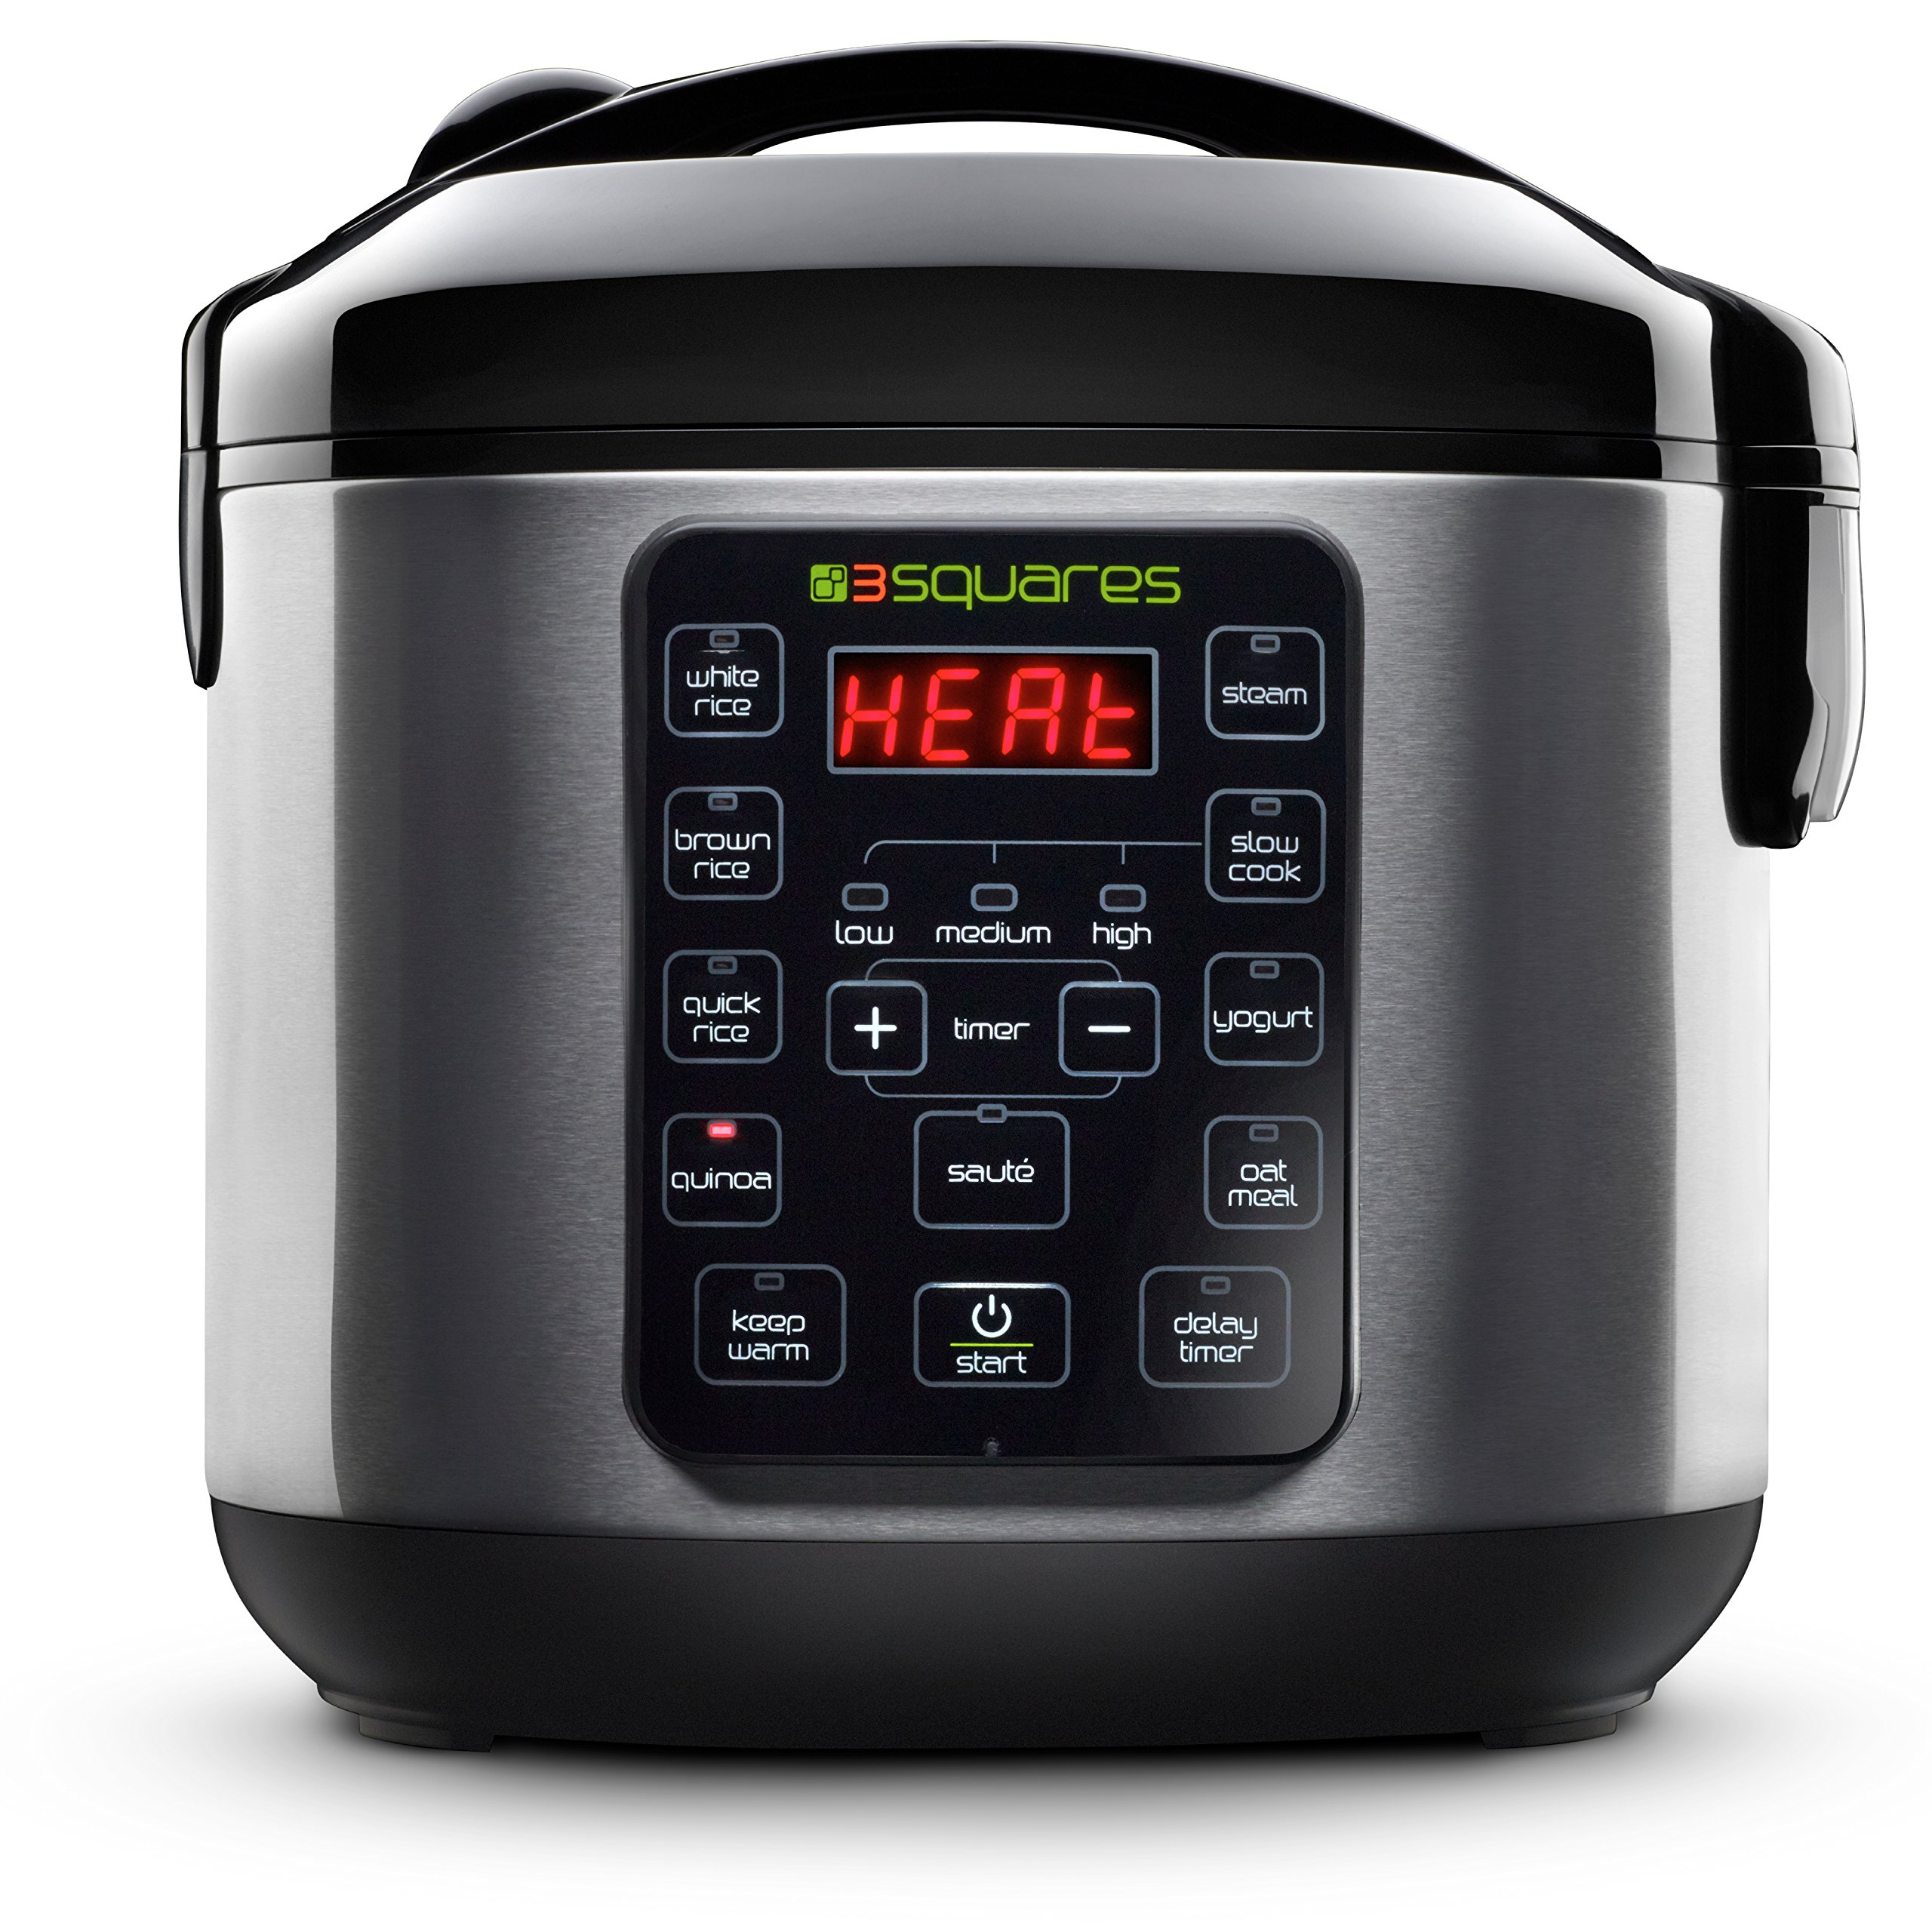 3 Squares 3RC-3050 Rice Cooker, 20 Cup/4 Qt, Stainless Steel/Black